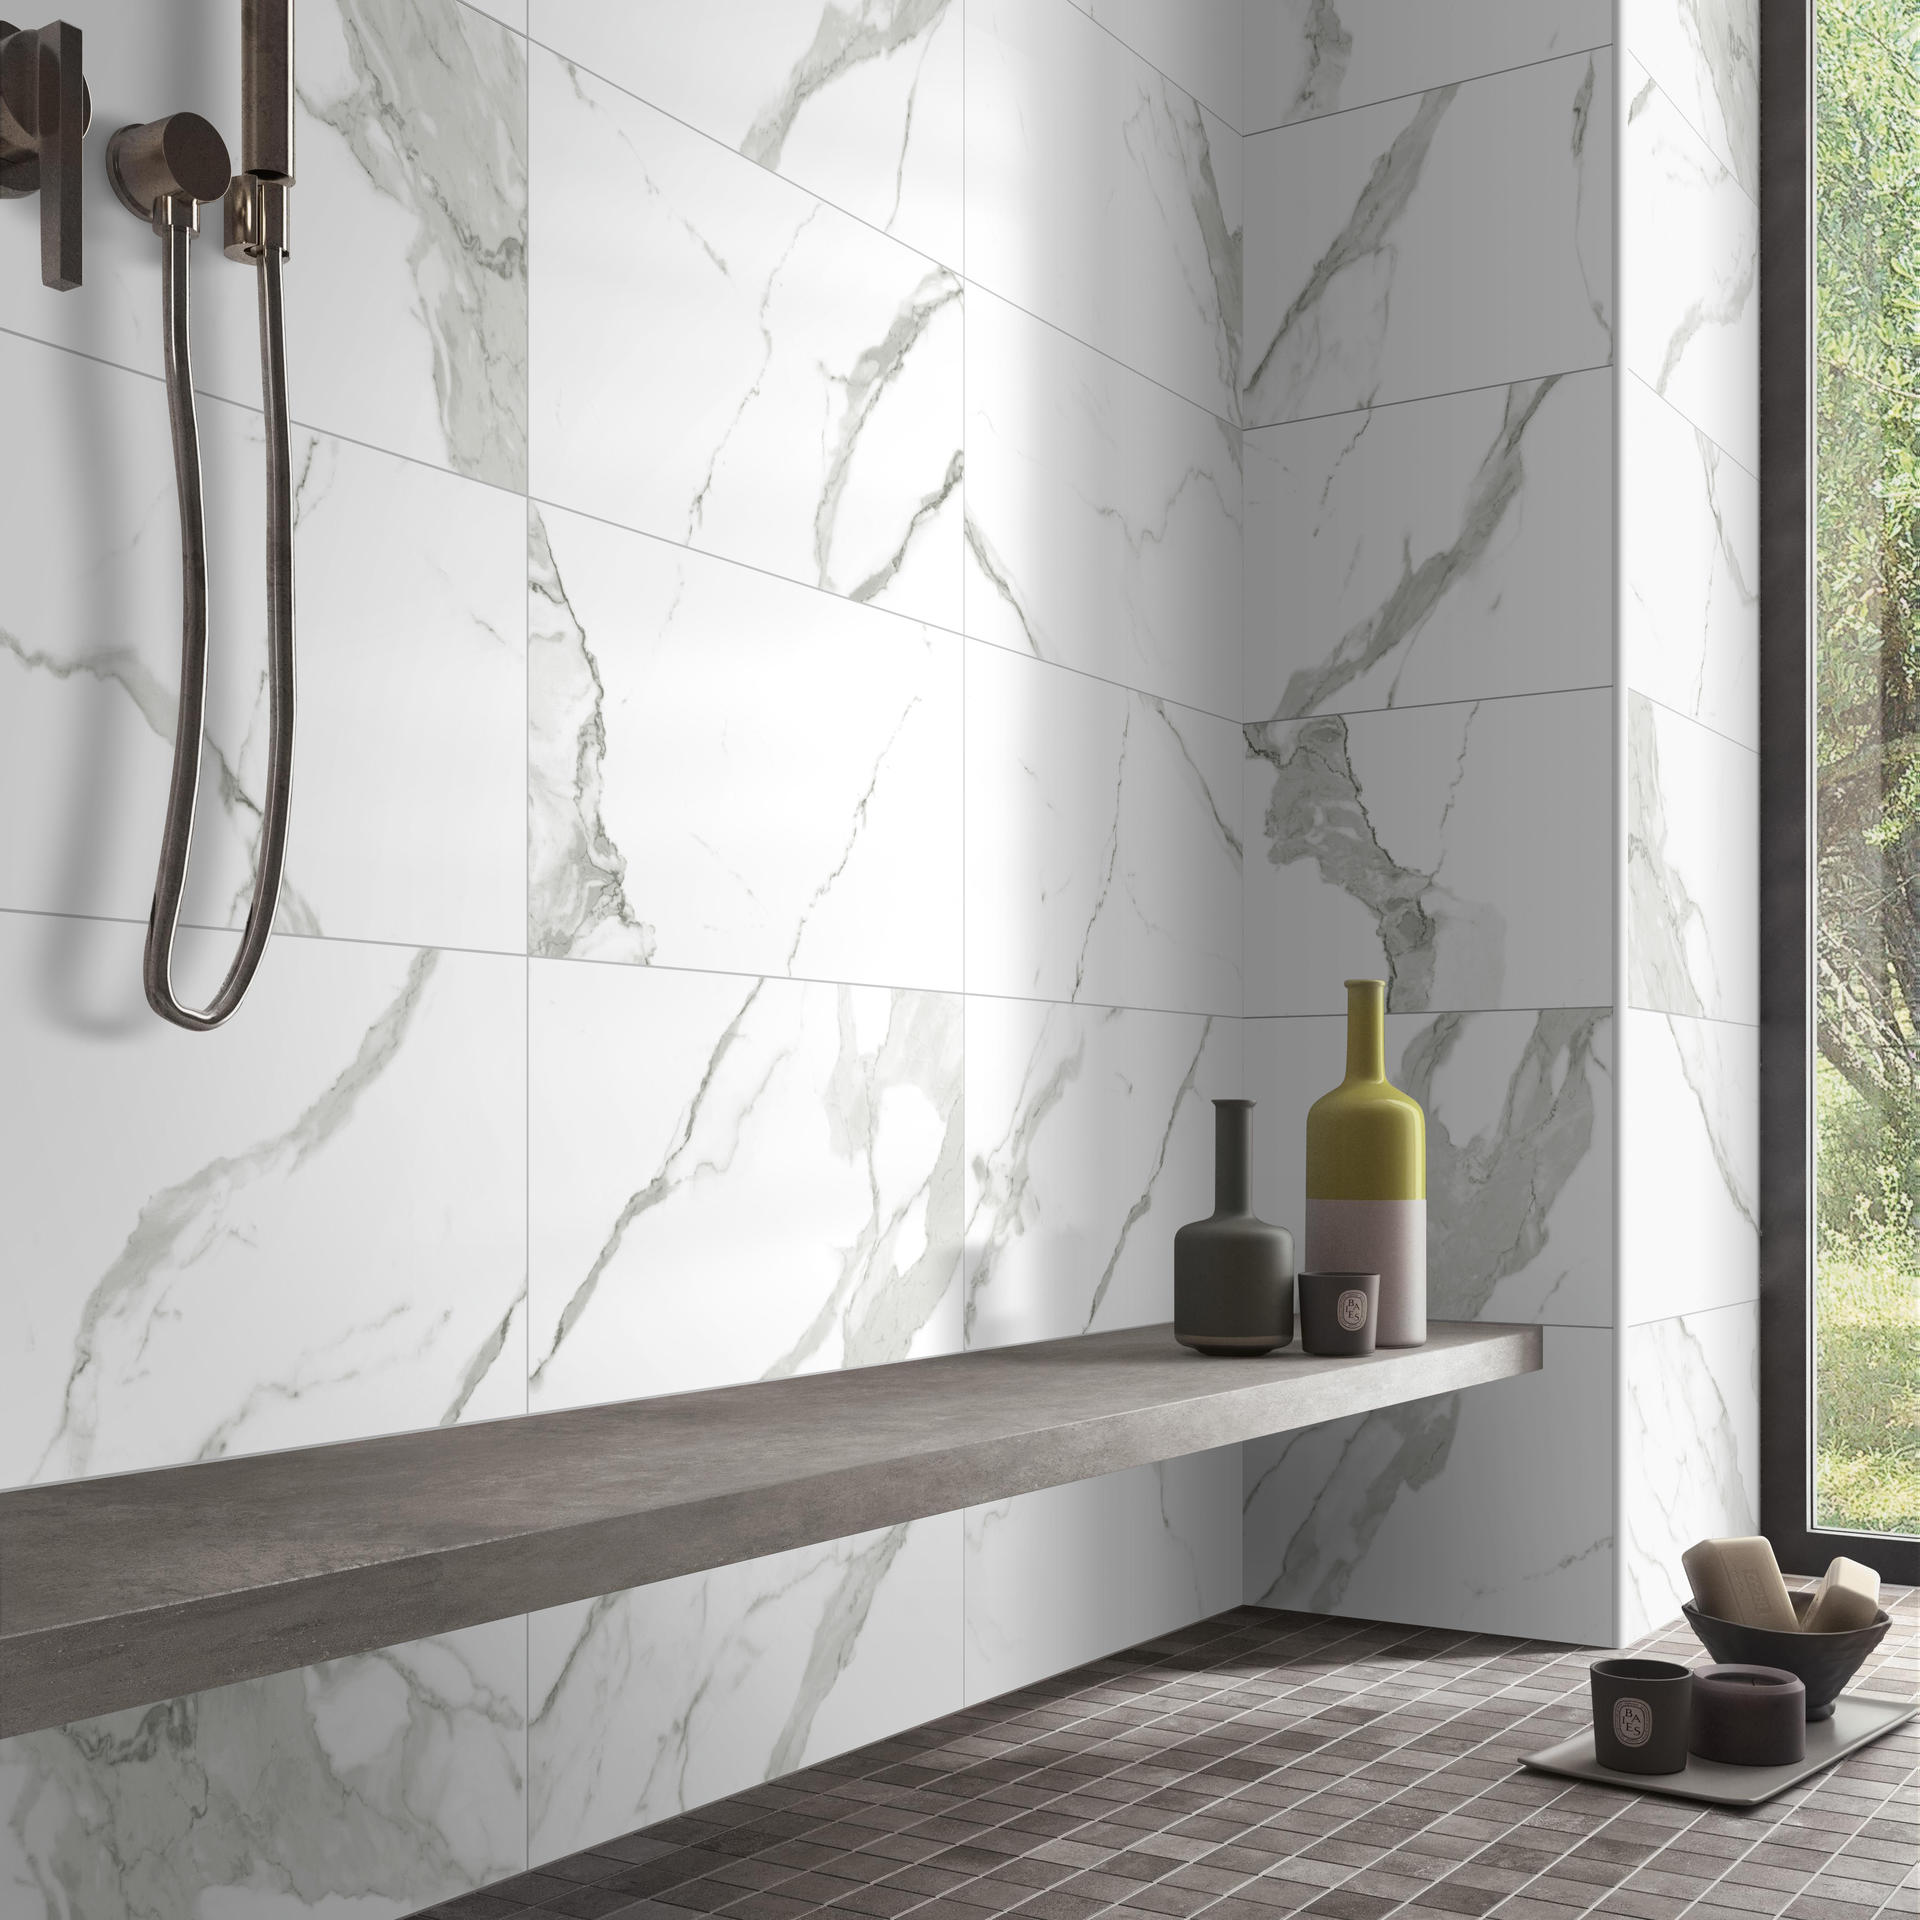 Calacatta Super White Marble Porcelain Floor Tile Polished Soft Matte China Glazed Kitchen & Bathroom Ceramic Shower tiles